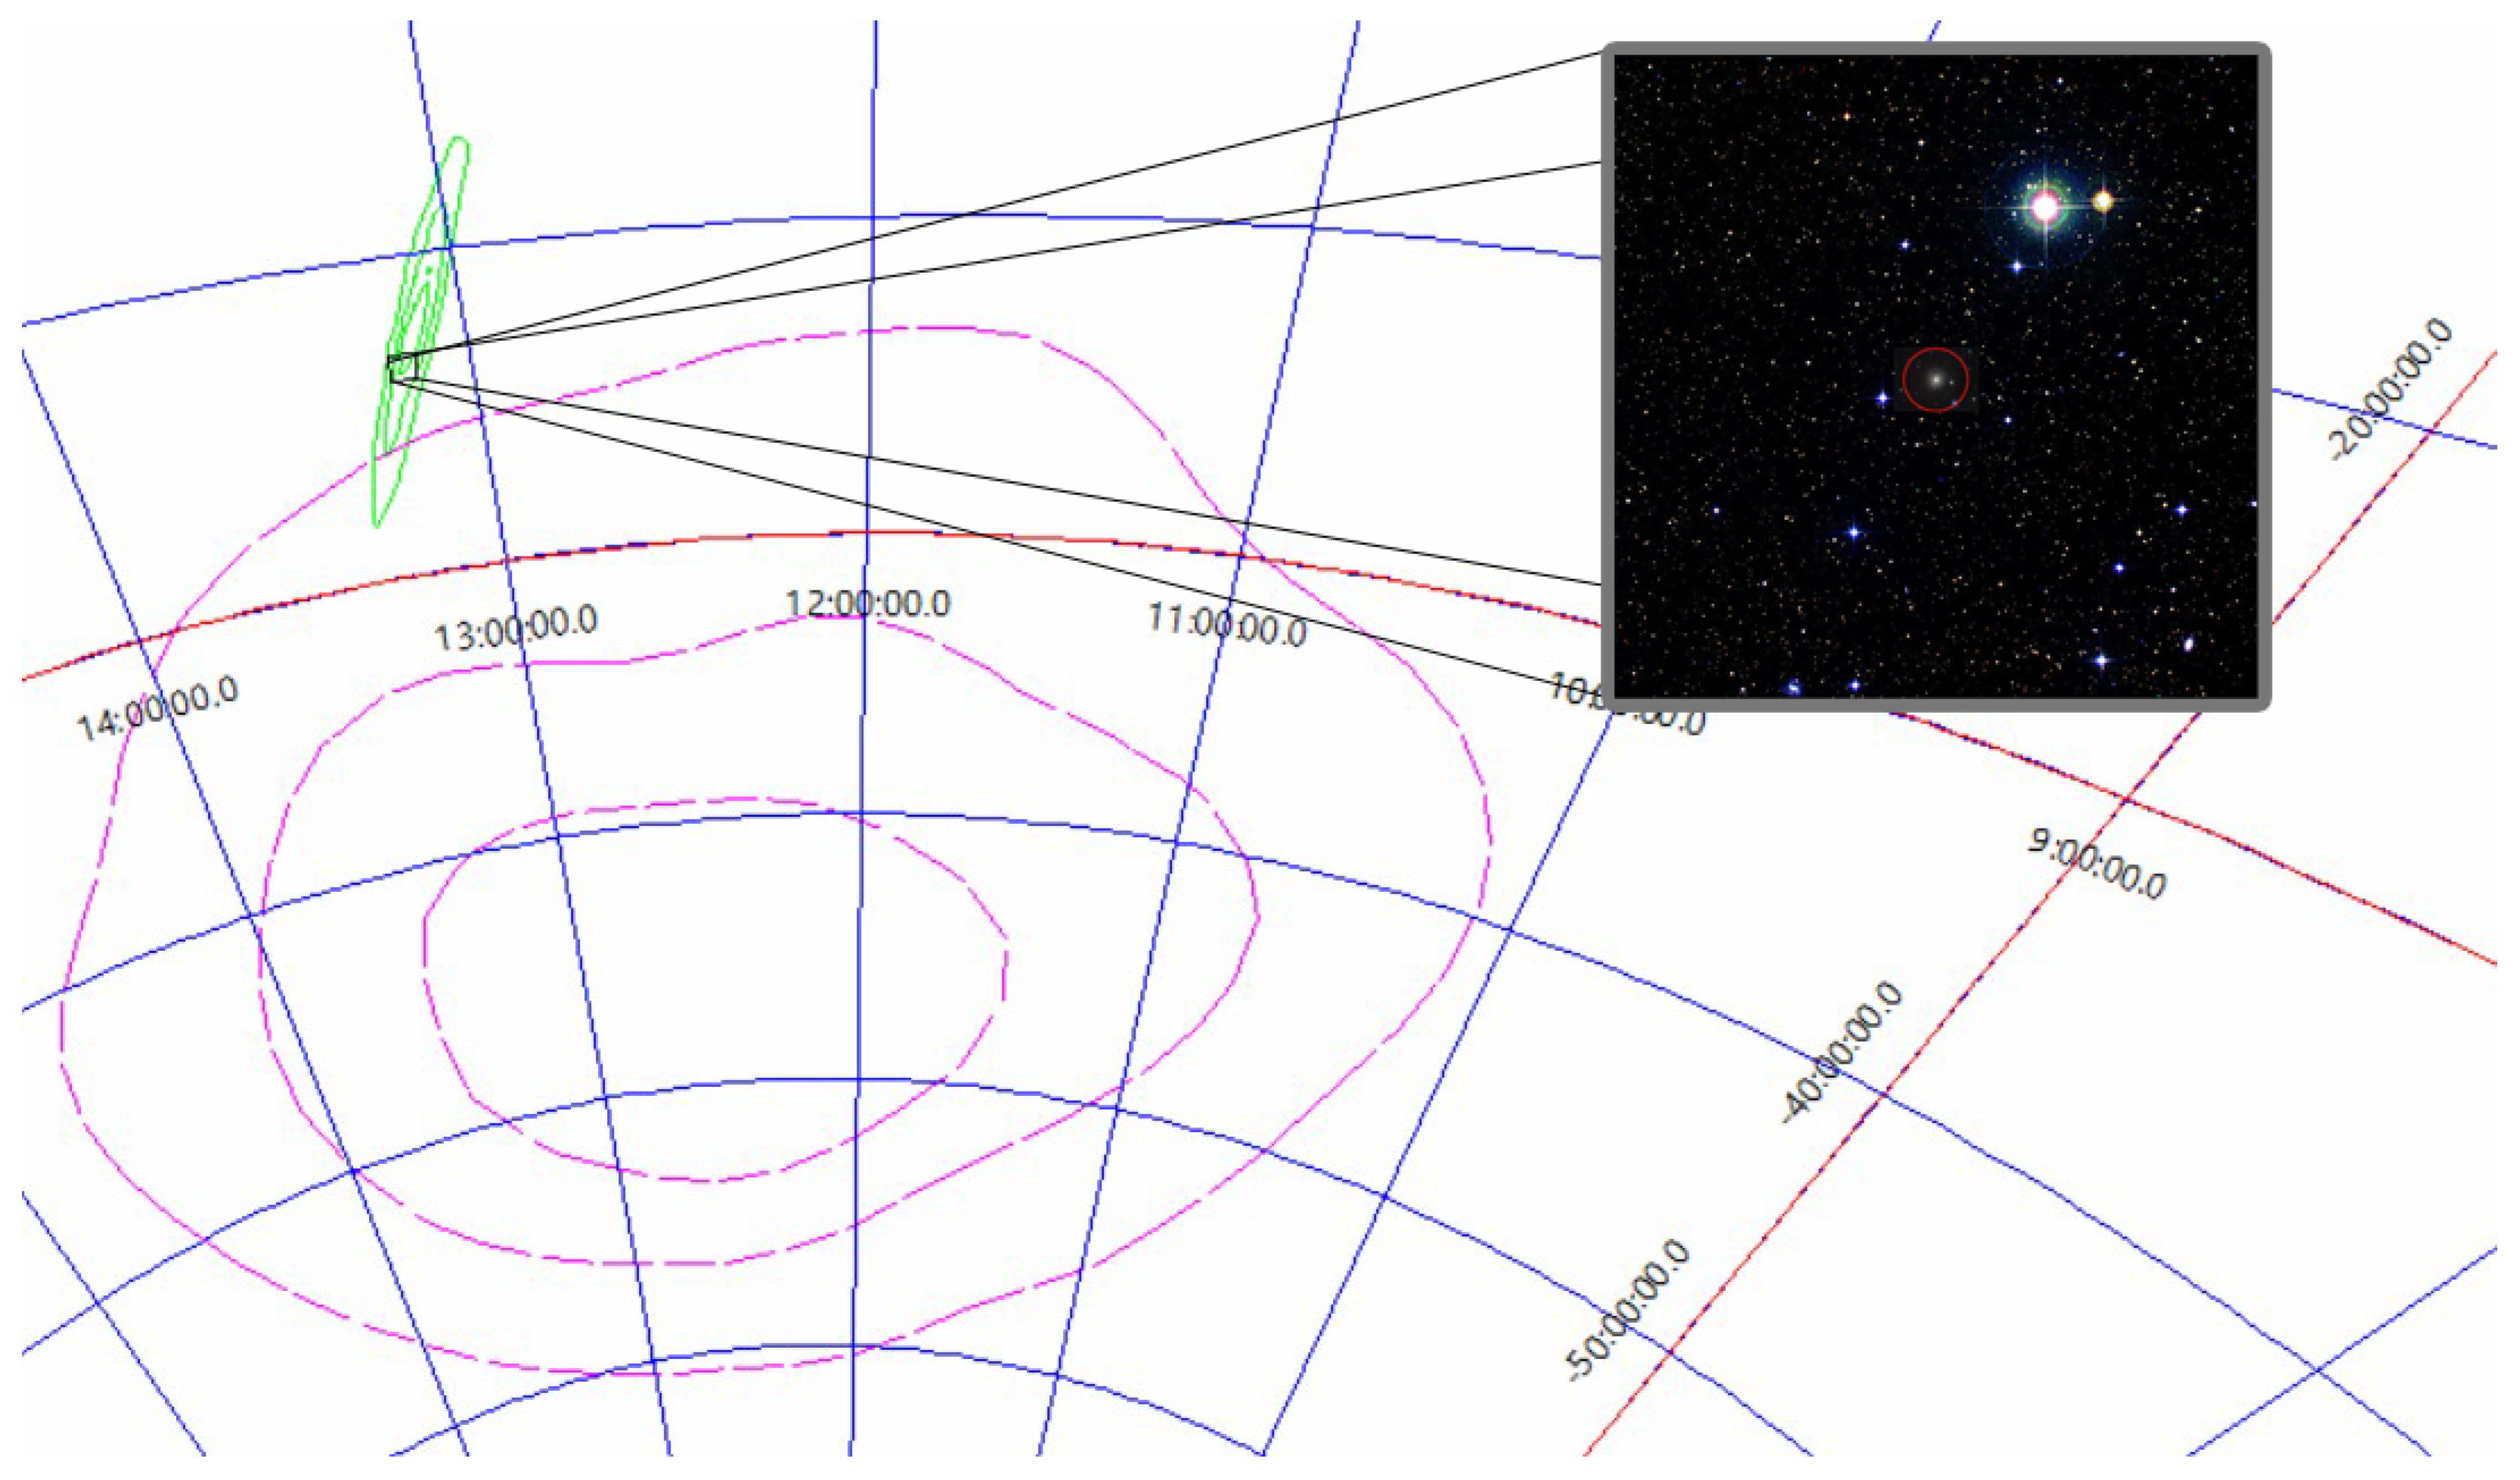 Galaxies   Free Full-Text   The Rate of Short-Duration Gamma-Ray